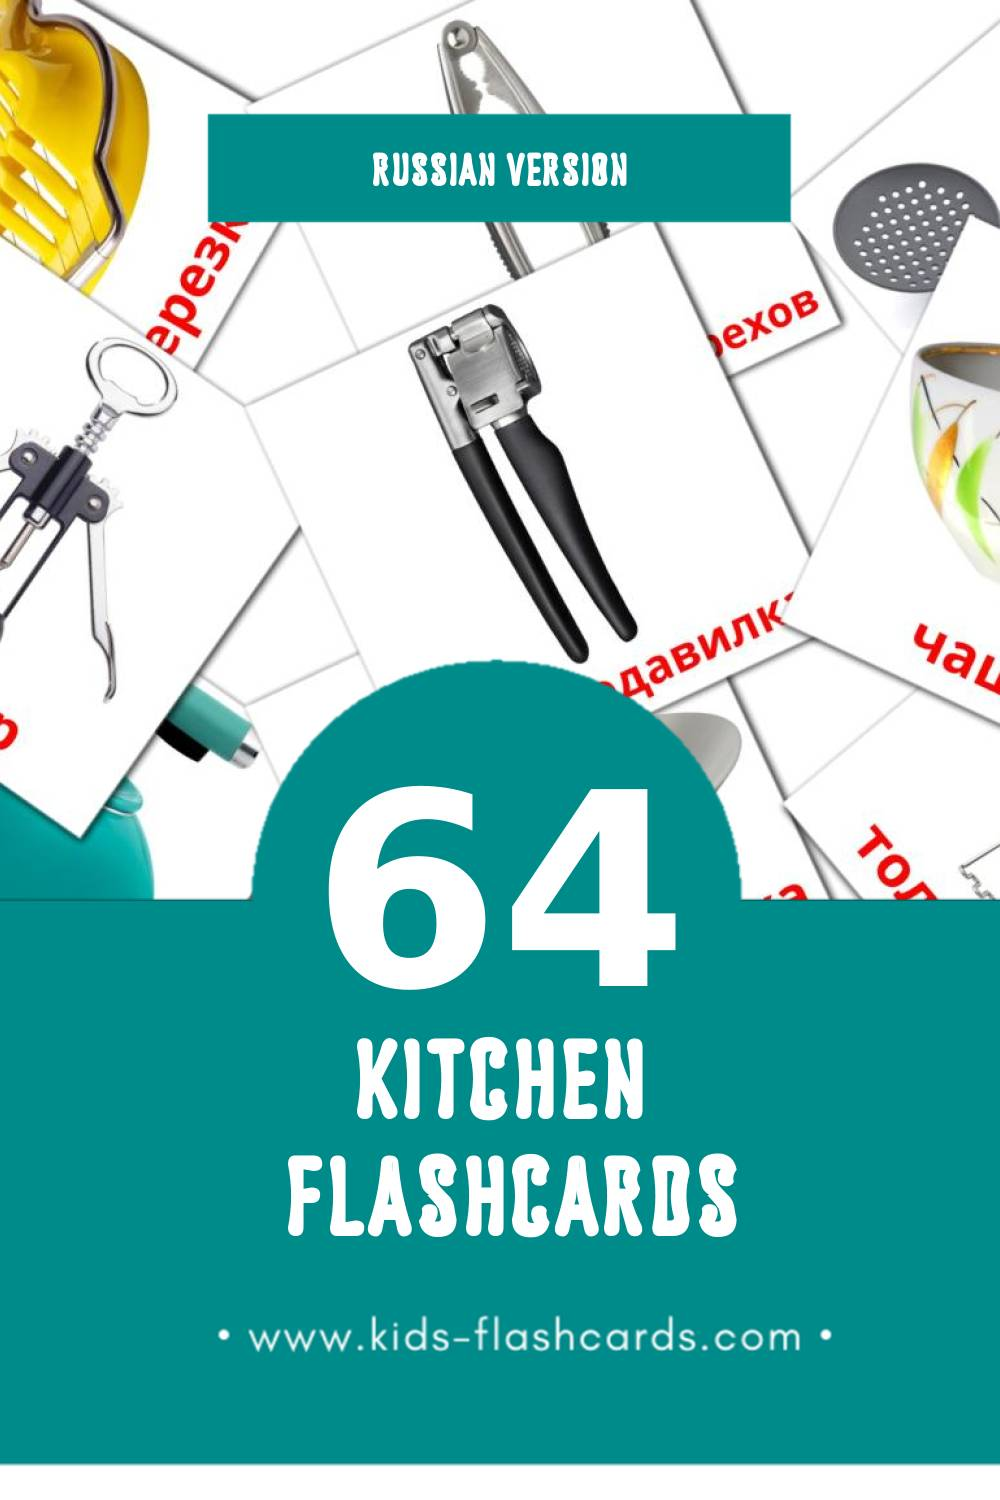 Visual Кухня Flashcards for Toddlers (64 cards in Russian)